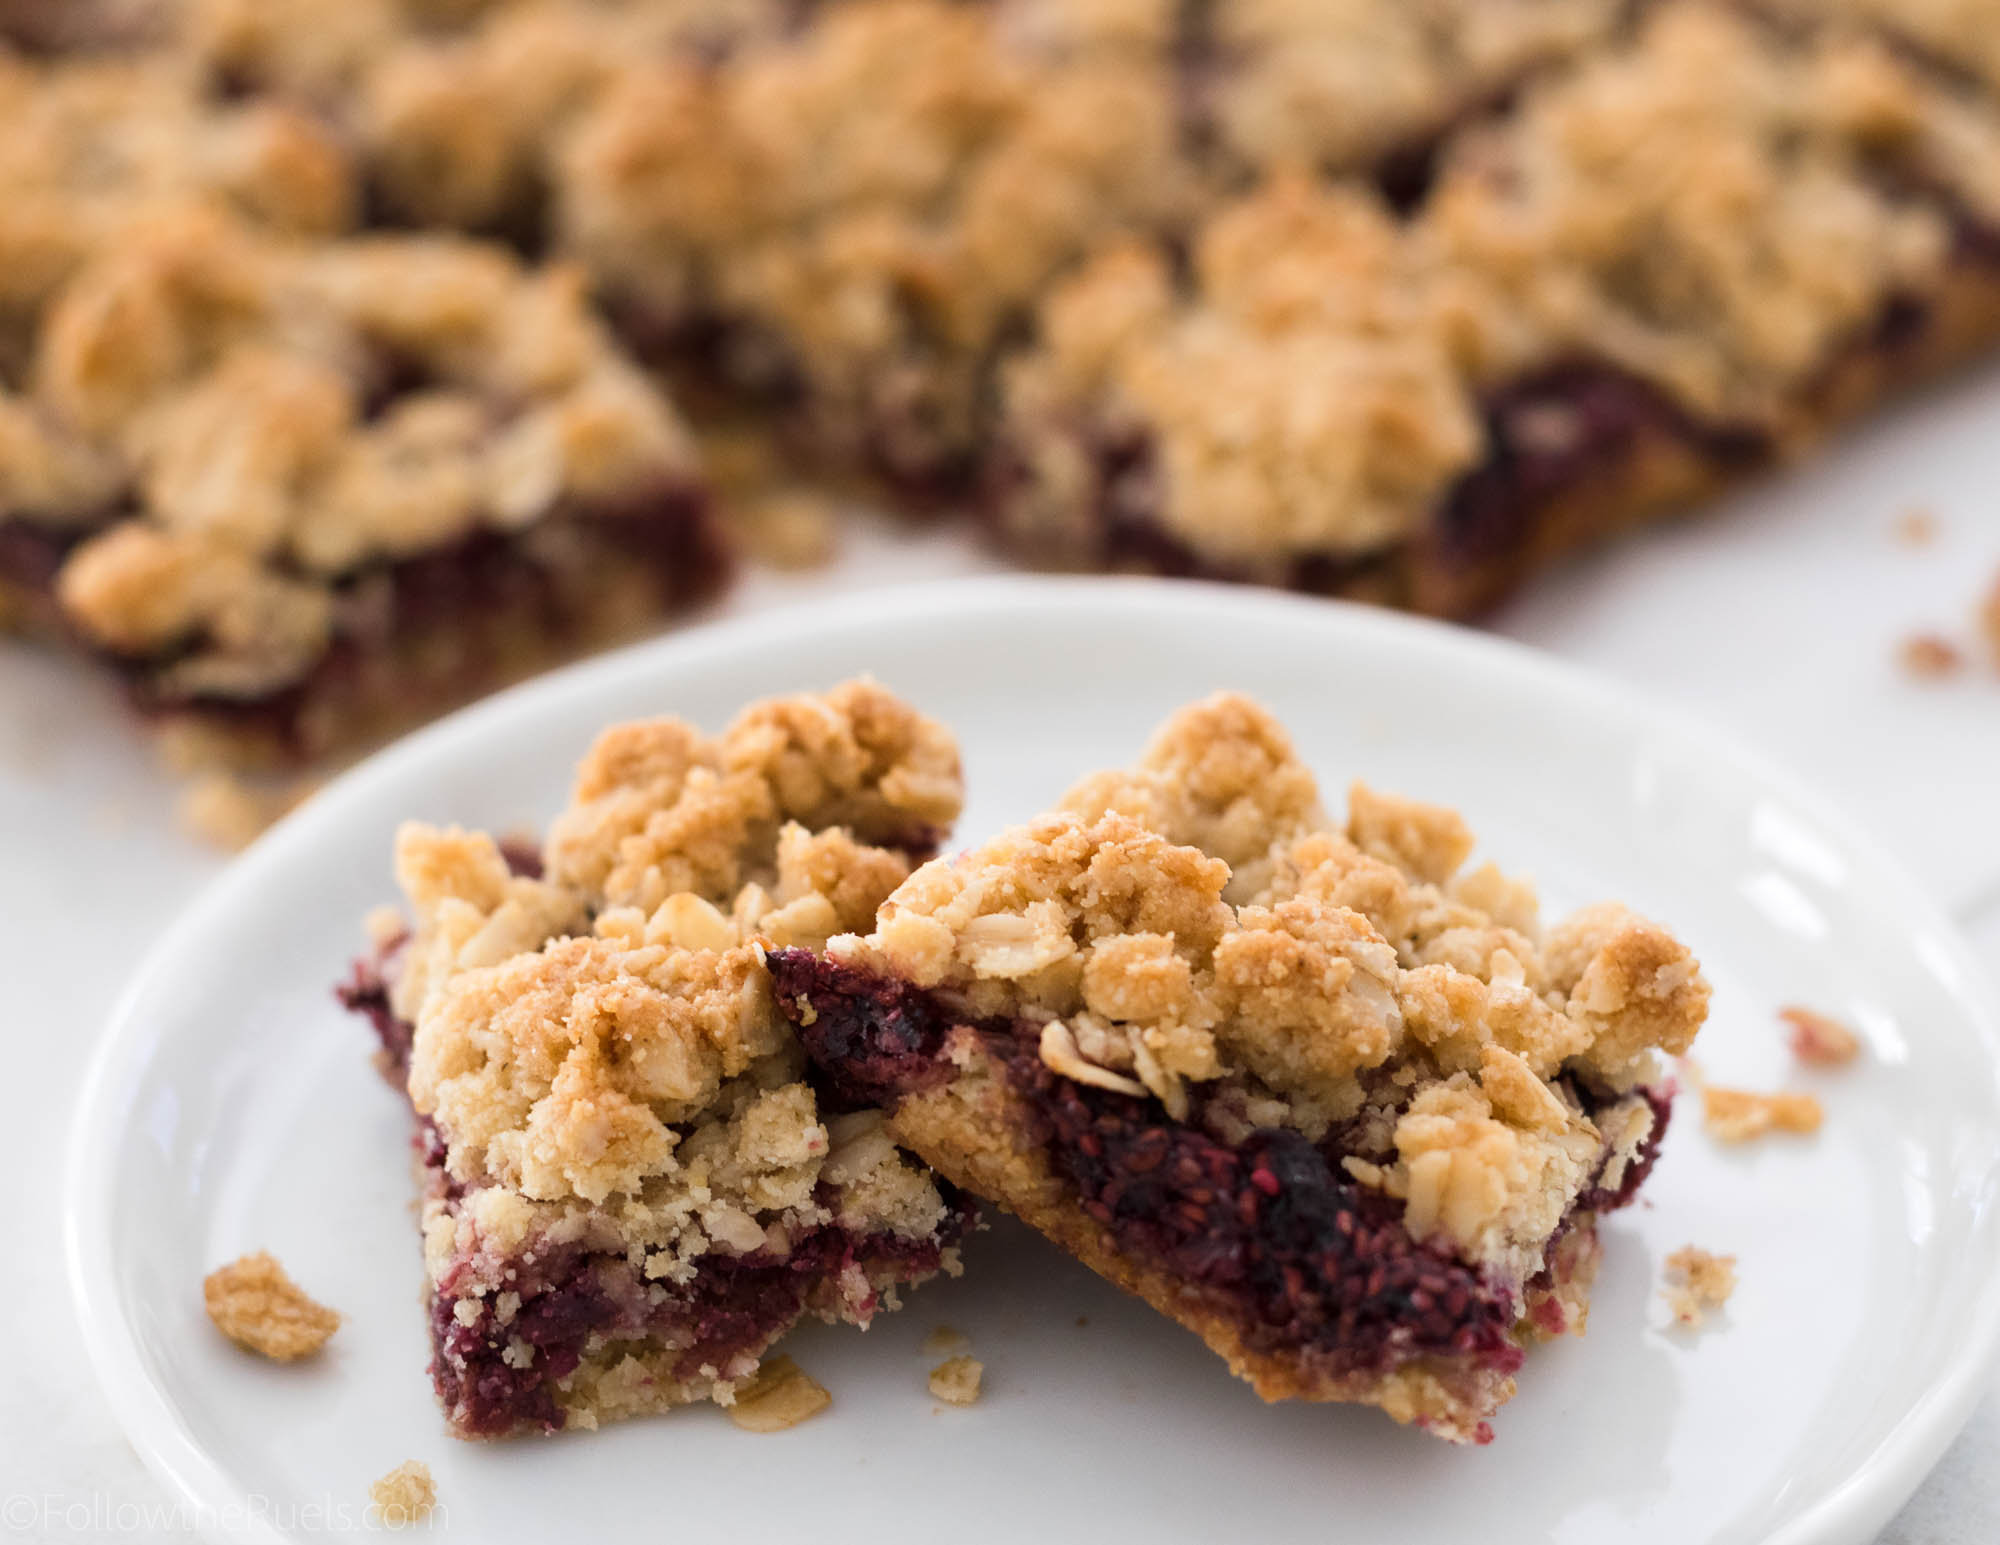 Raspberry-Oatmeal-Bars-11.jpg